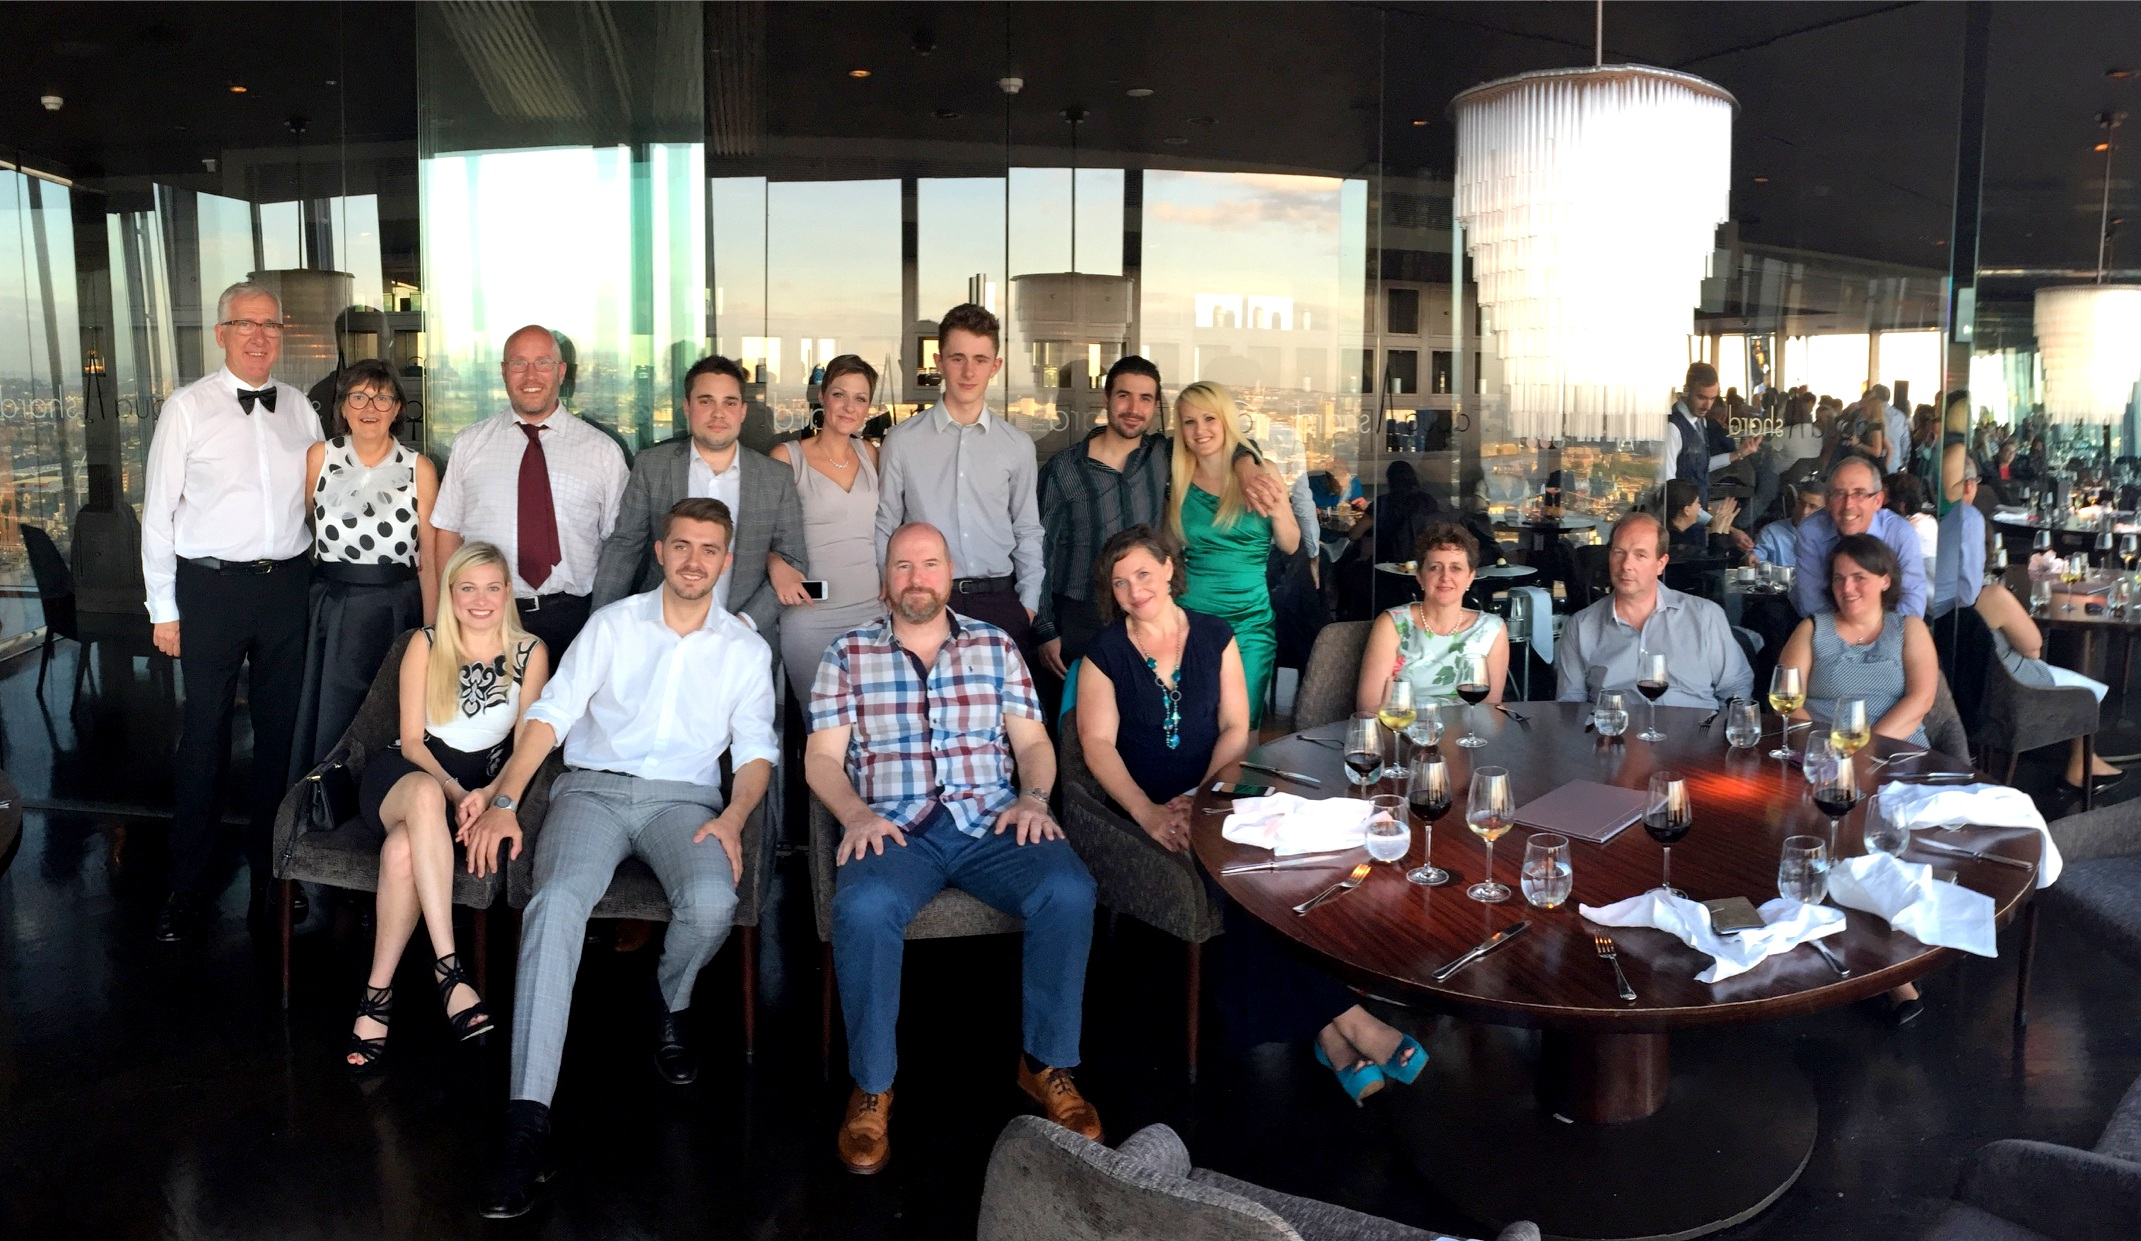 Block Management and Building Surveying team enjoy an evening of fine dining at the Shard.